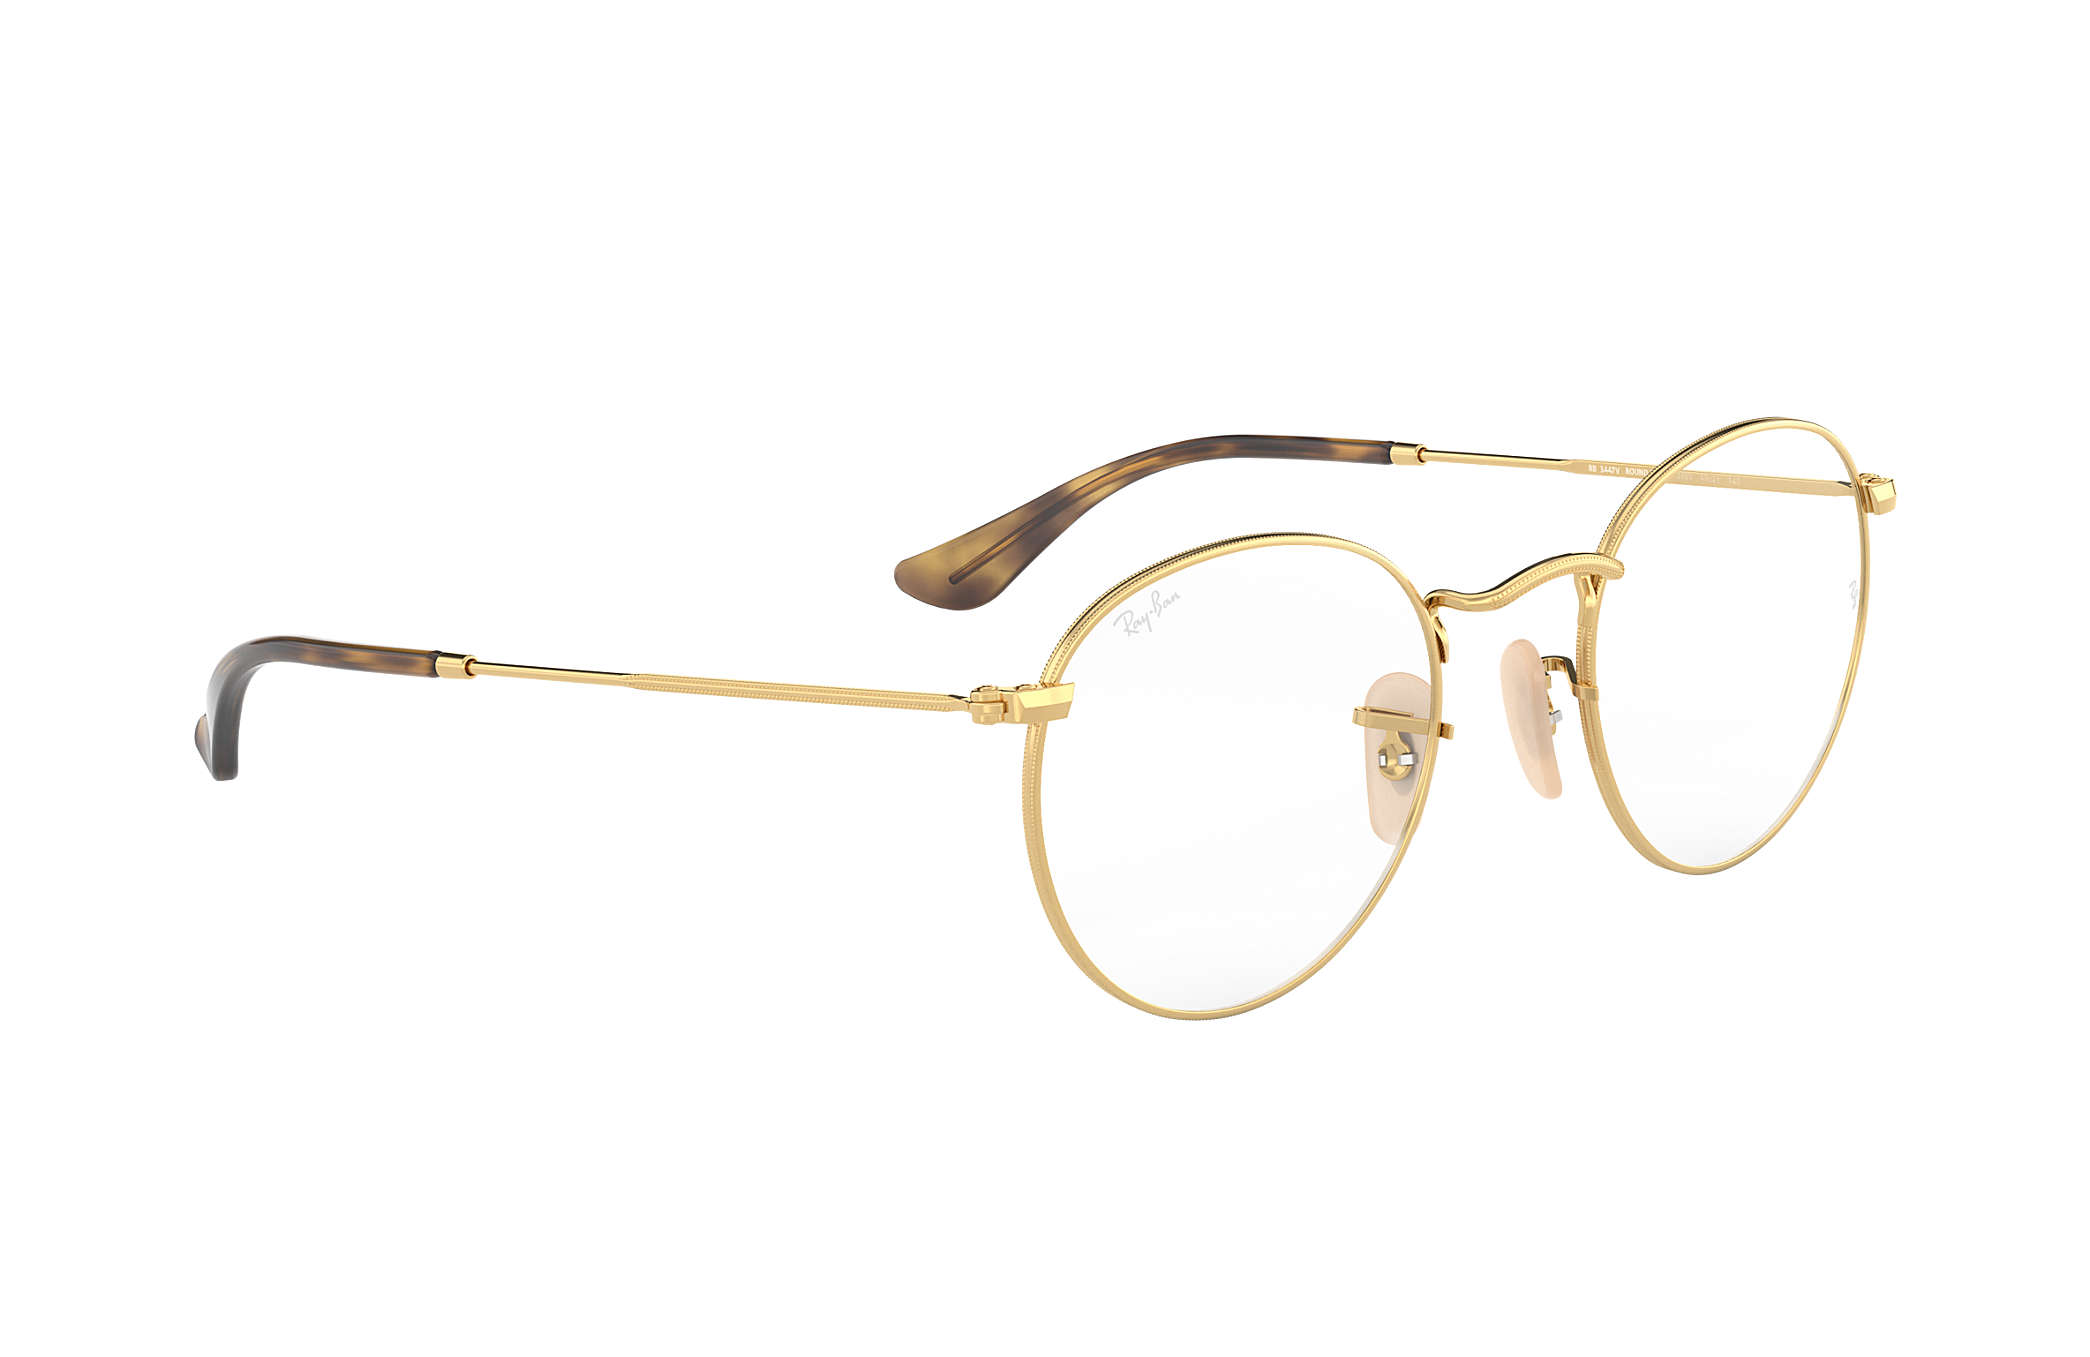 40a031260a ... eyeglasses 3ed8d 46c40  order ray ban 0rx3447v round metal optics gold  optical 05414 3251b